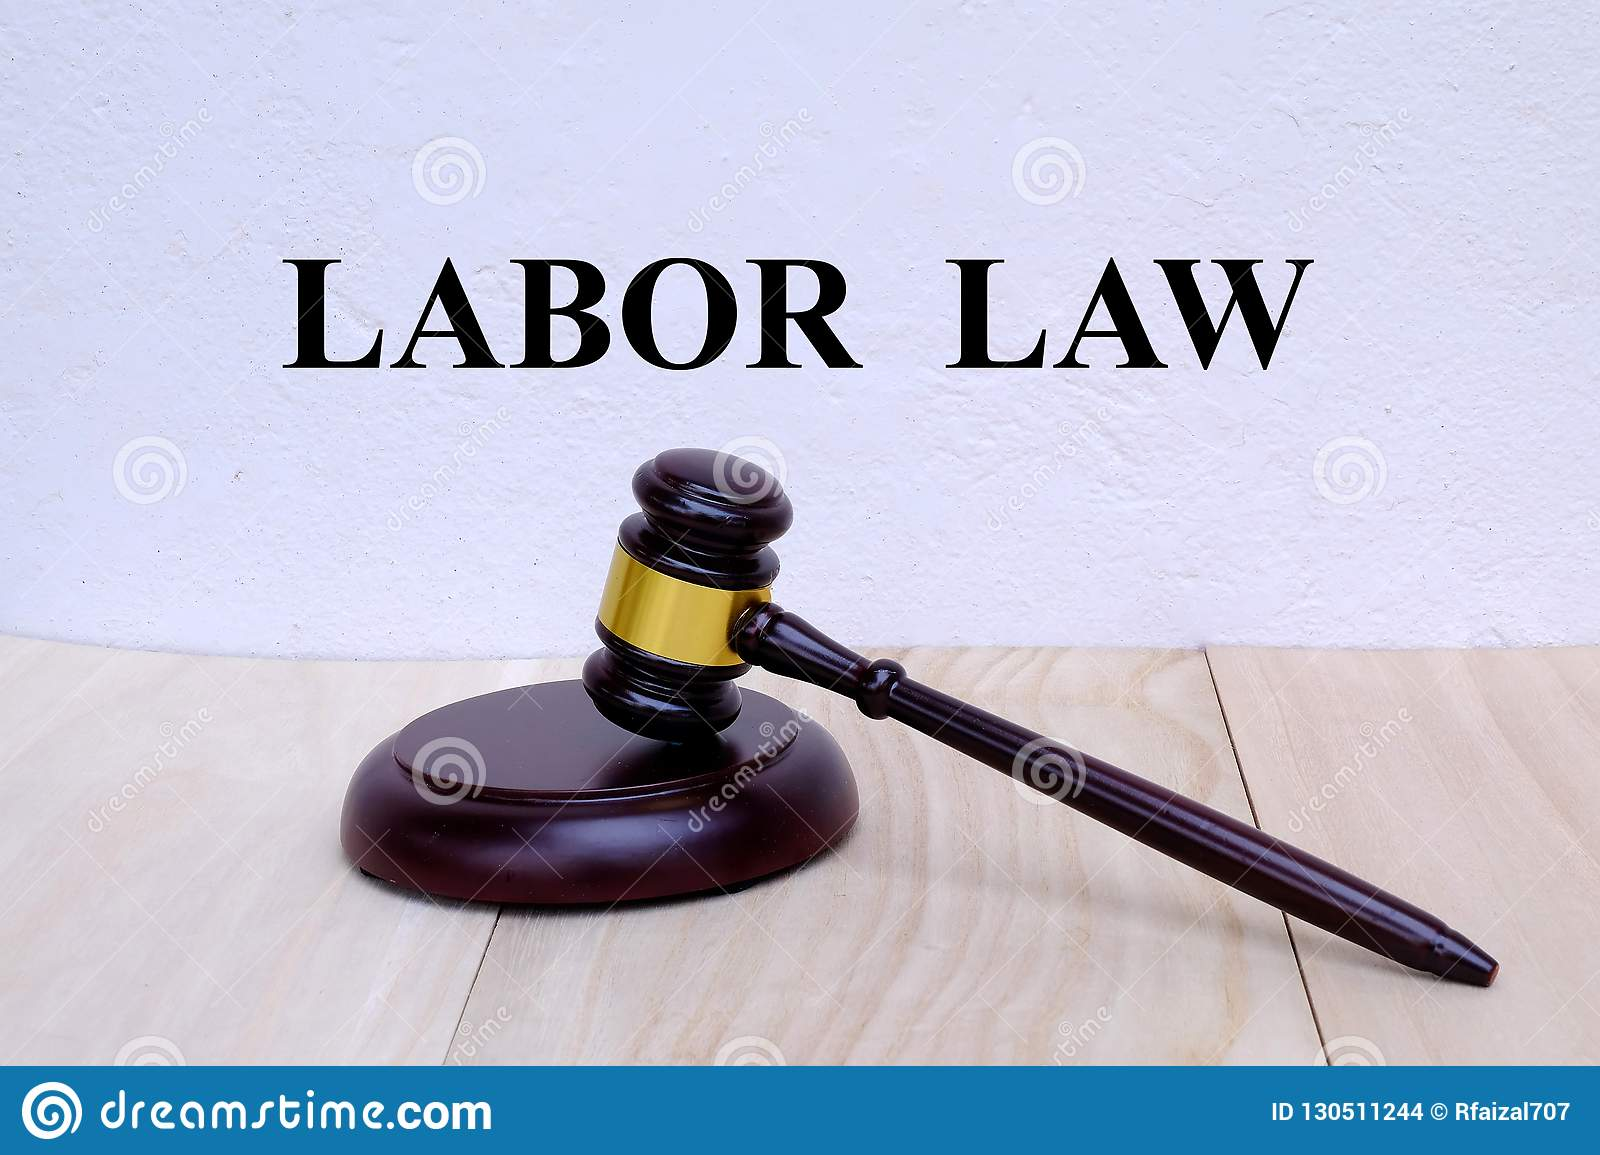 Labor Law written on the wall with gavel on wooden background. Law concept